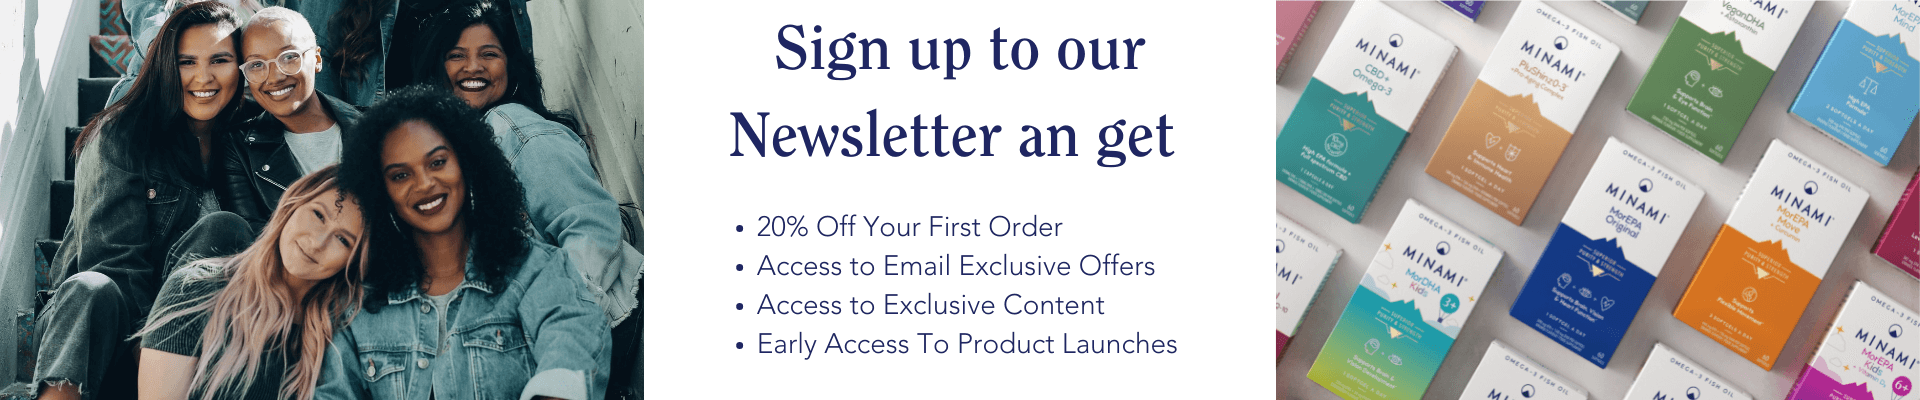 Sign up to our newsletter and get<br><br> 20% Off your first order<br>Exclusive newsletter offers<br>Early Access to new product launches